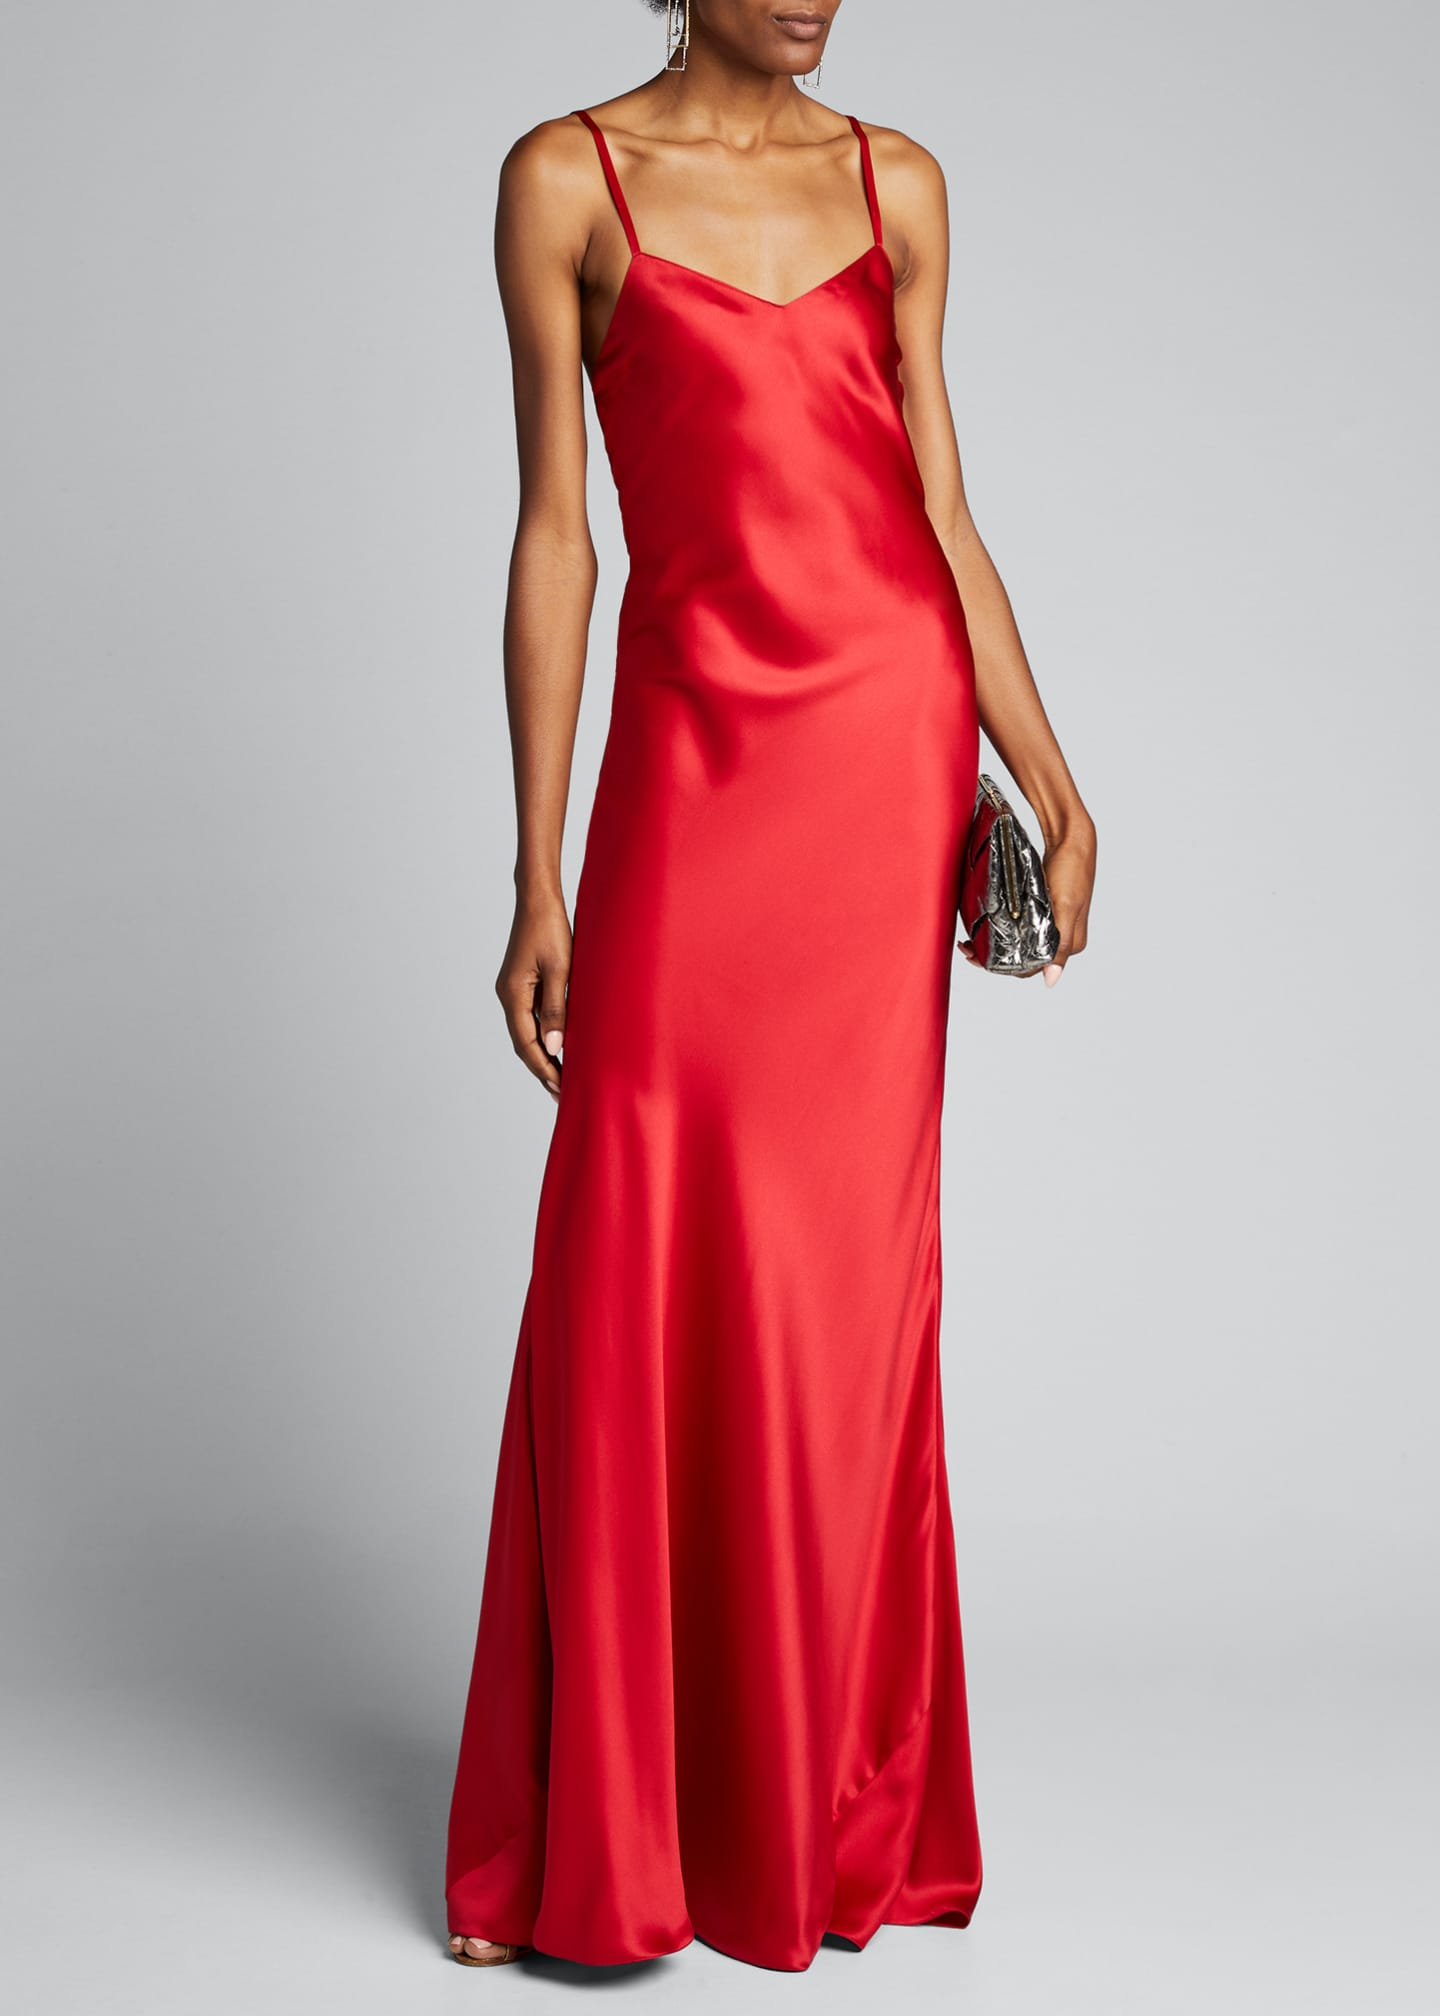 Evelyn V-Neck Satin Slip Evening Gown